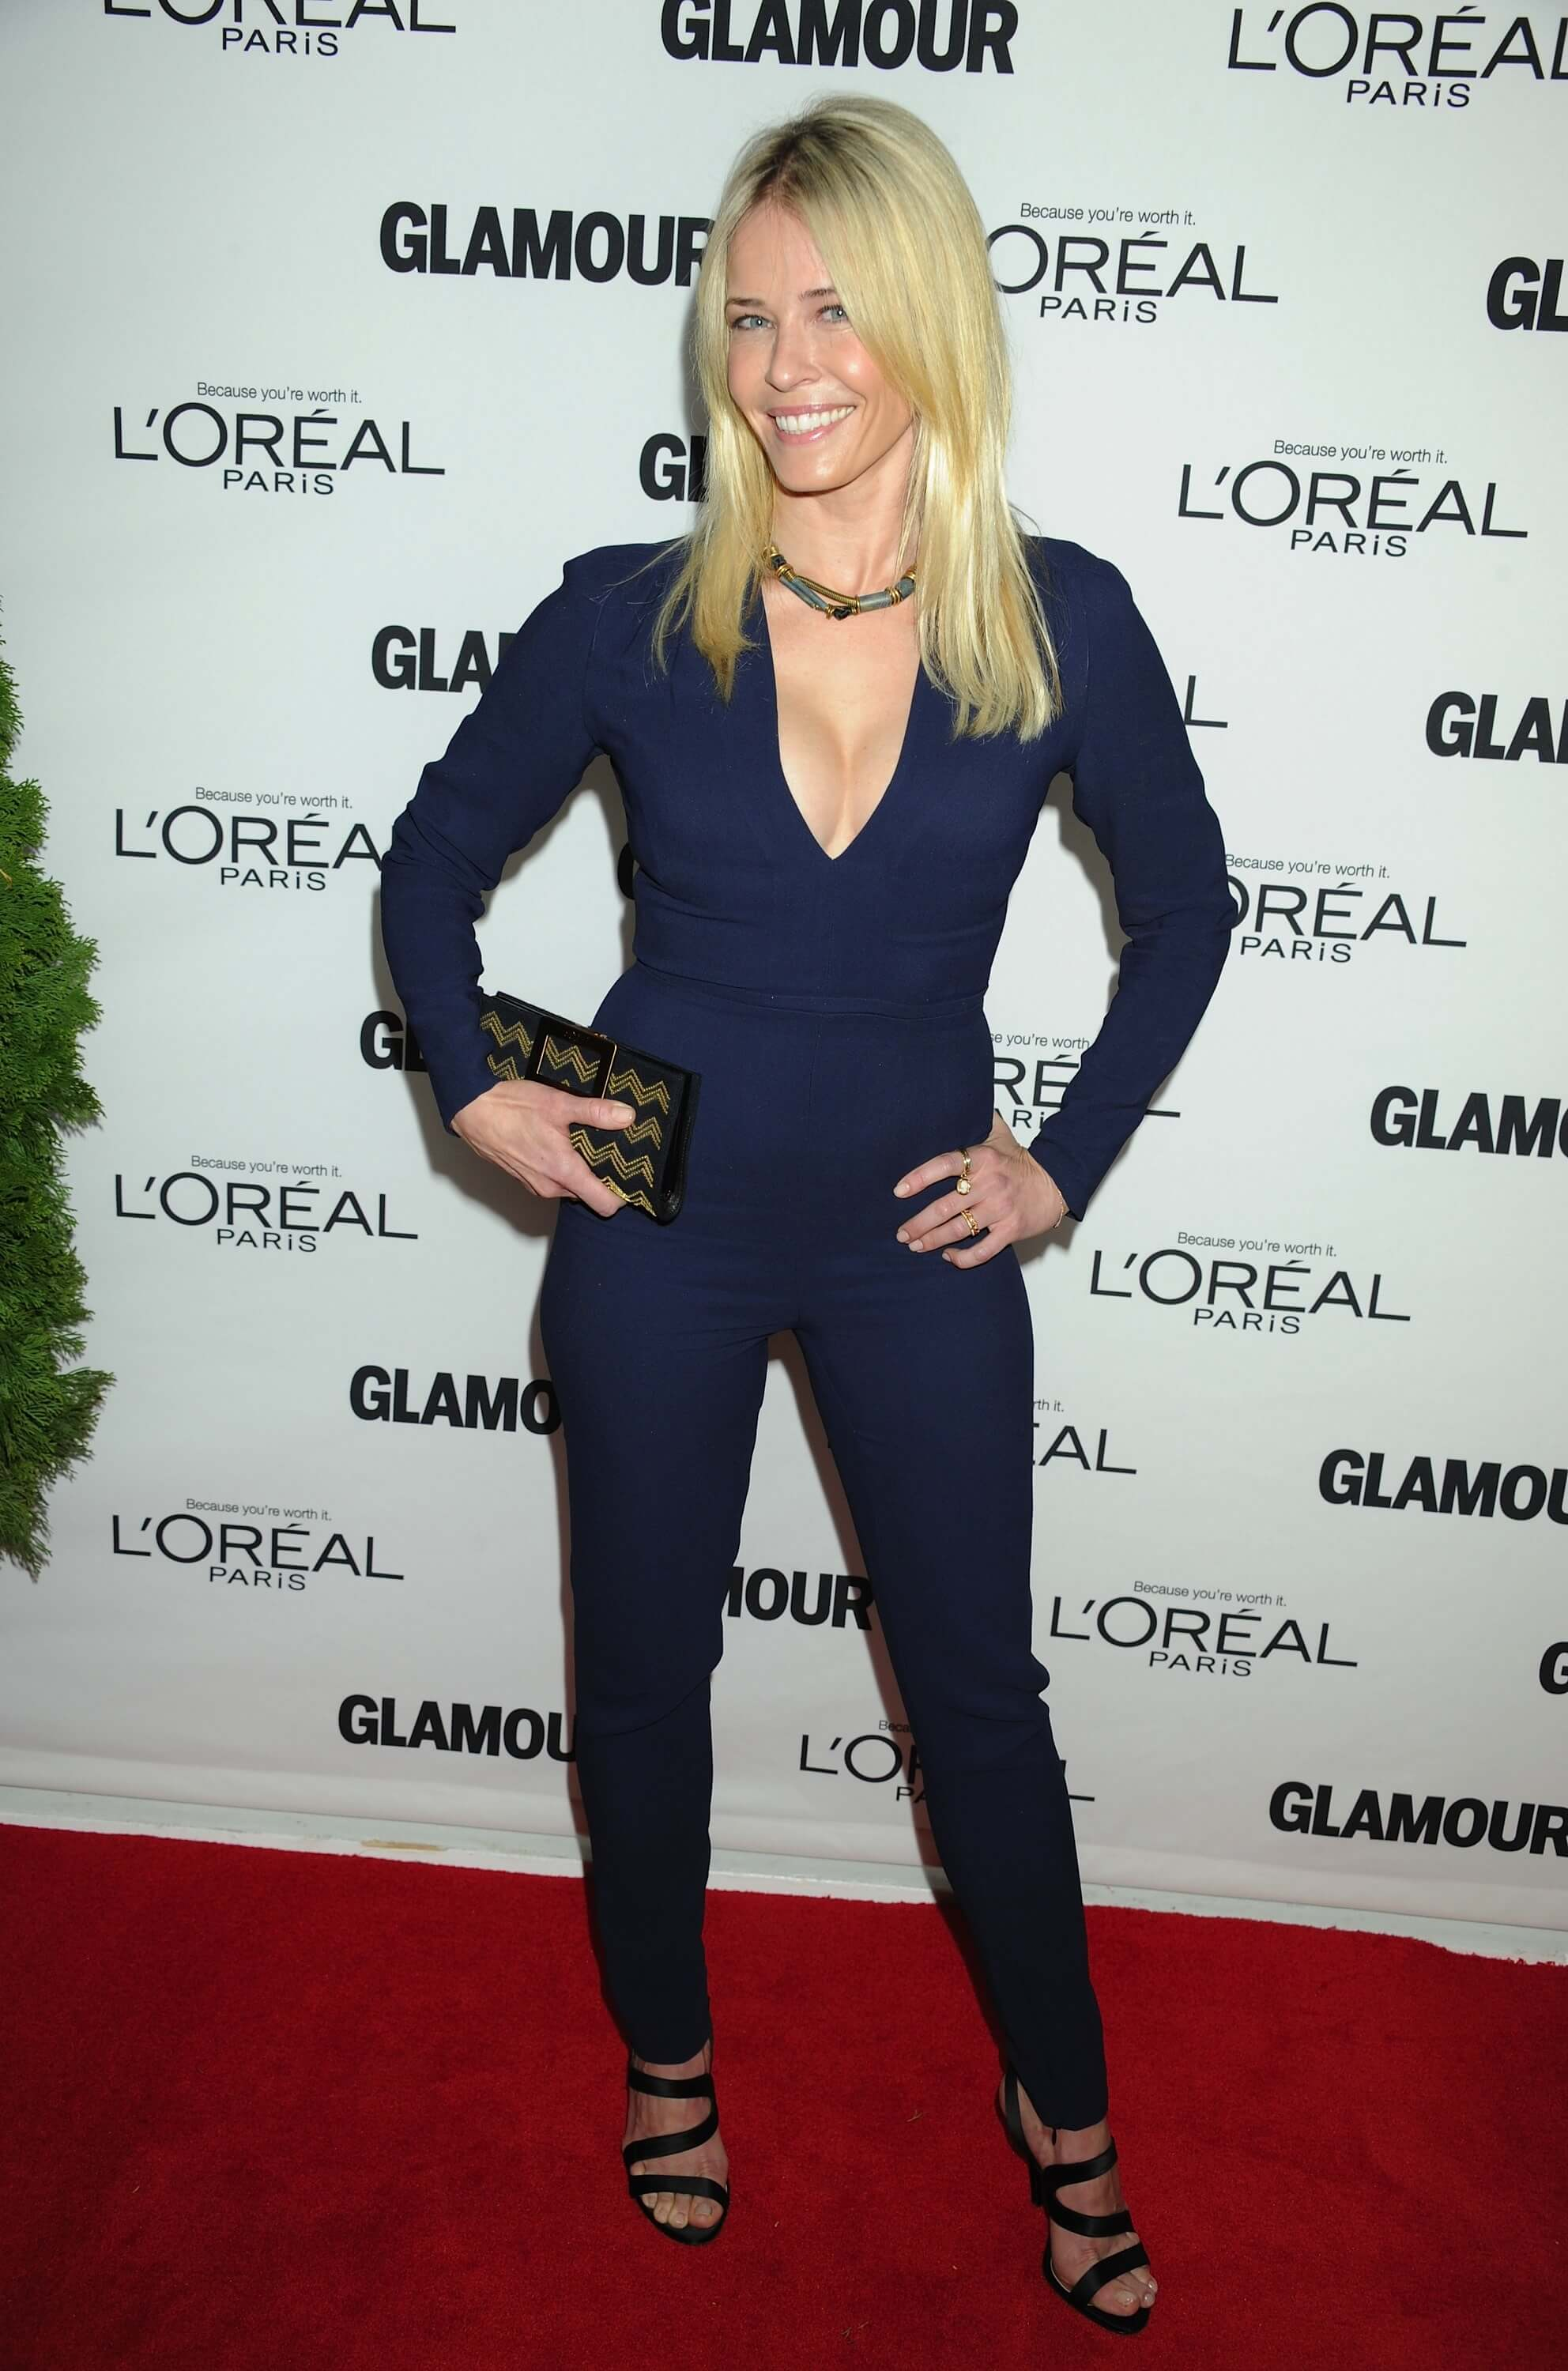 49 Hottest Chelsea Handler Big Butt Pictures Will Make You Crave For Her | Best Of Comic Books